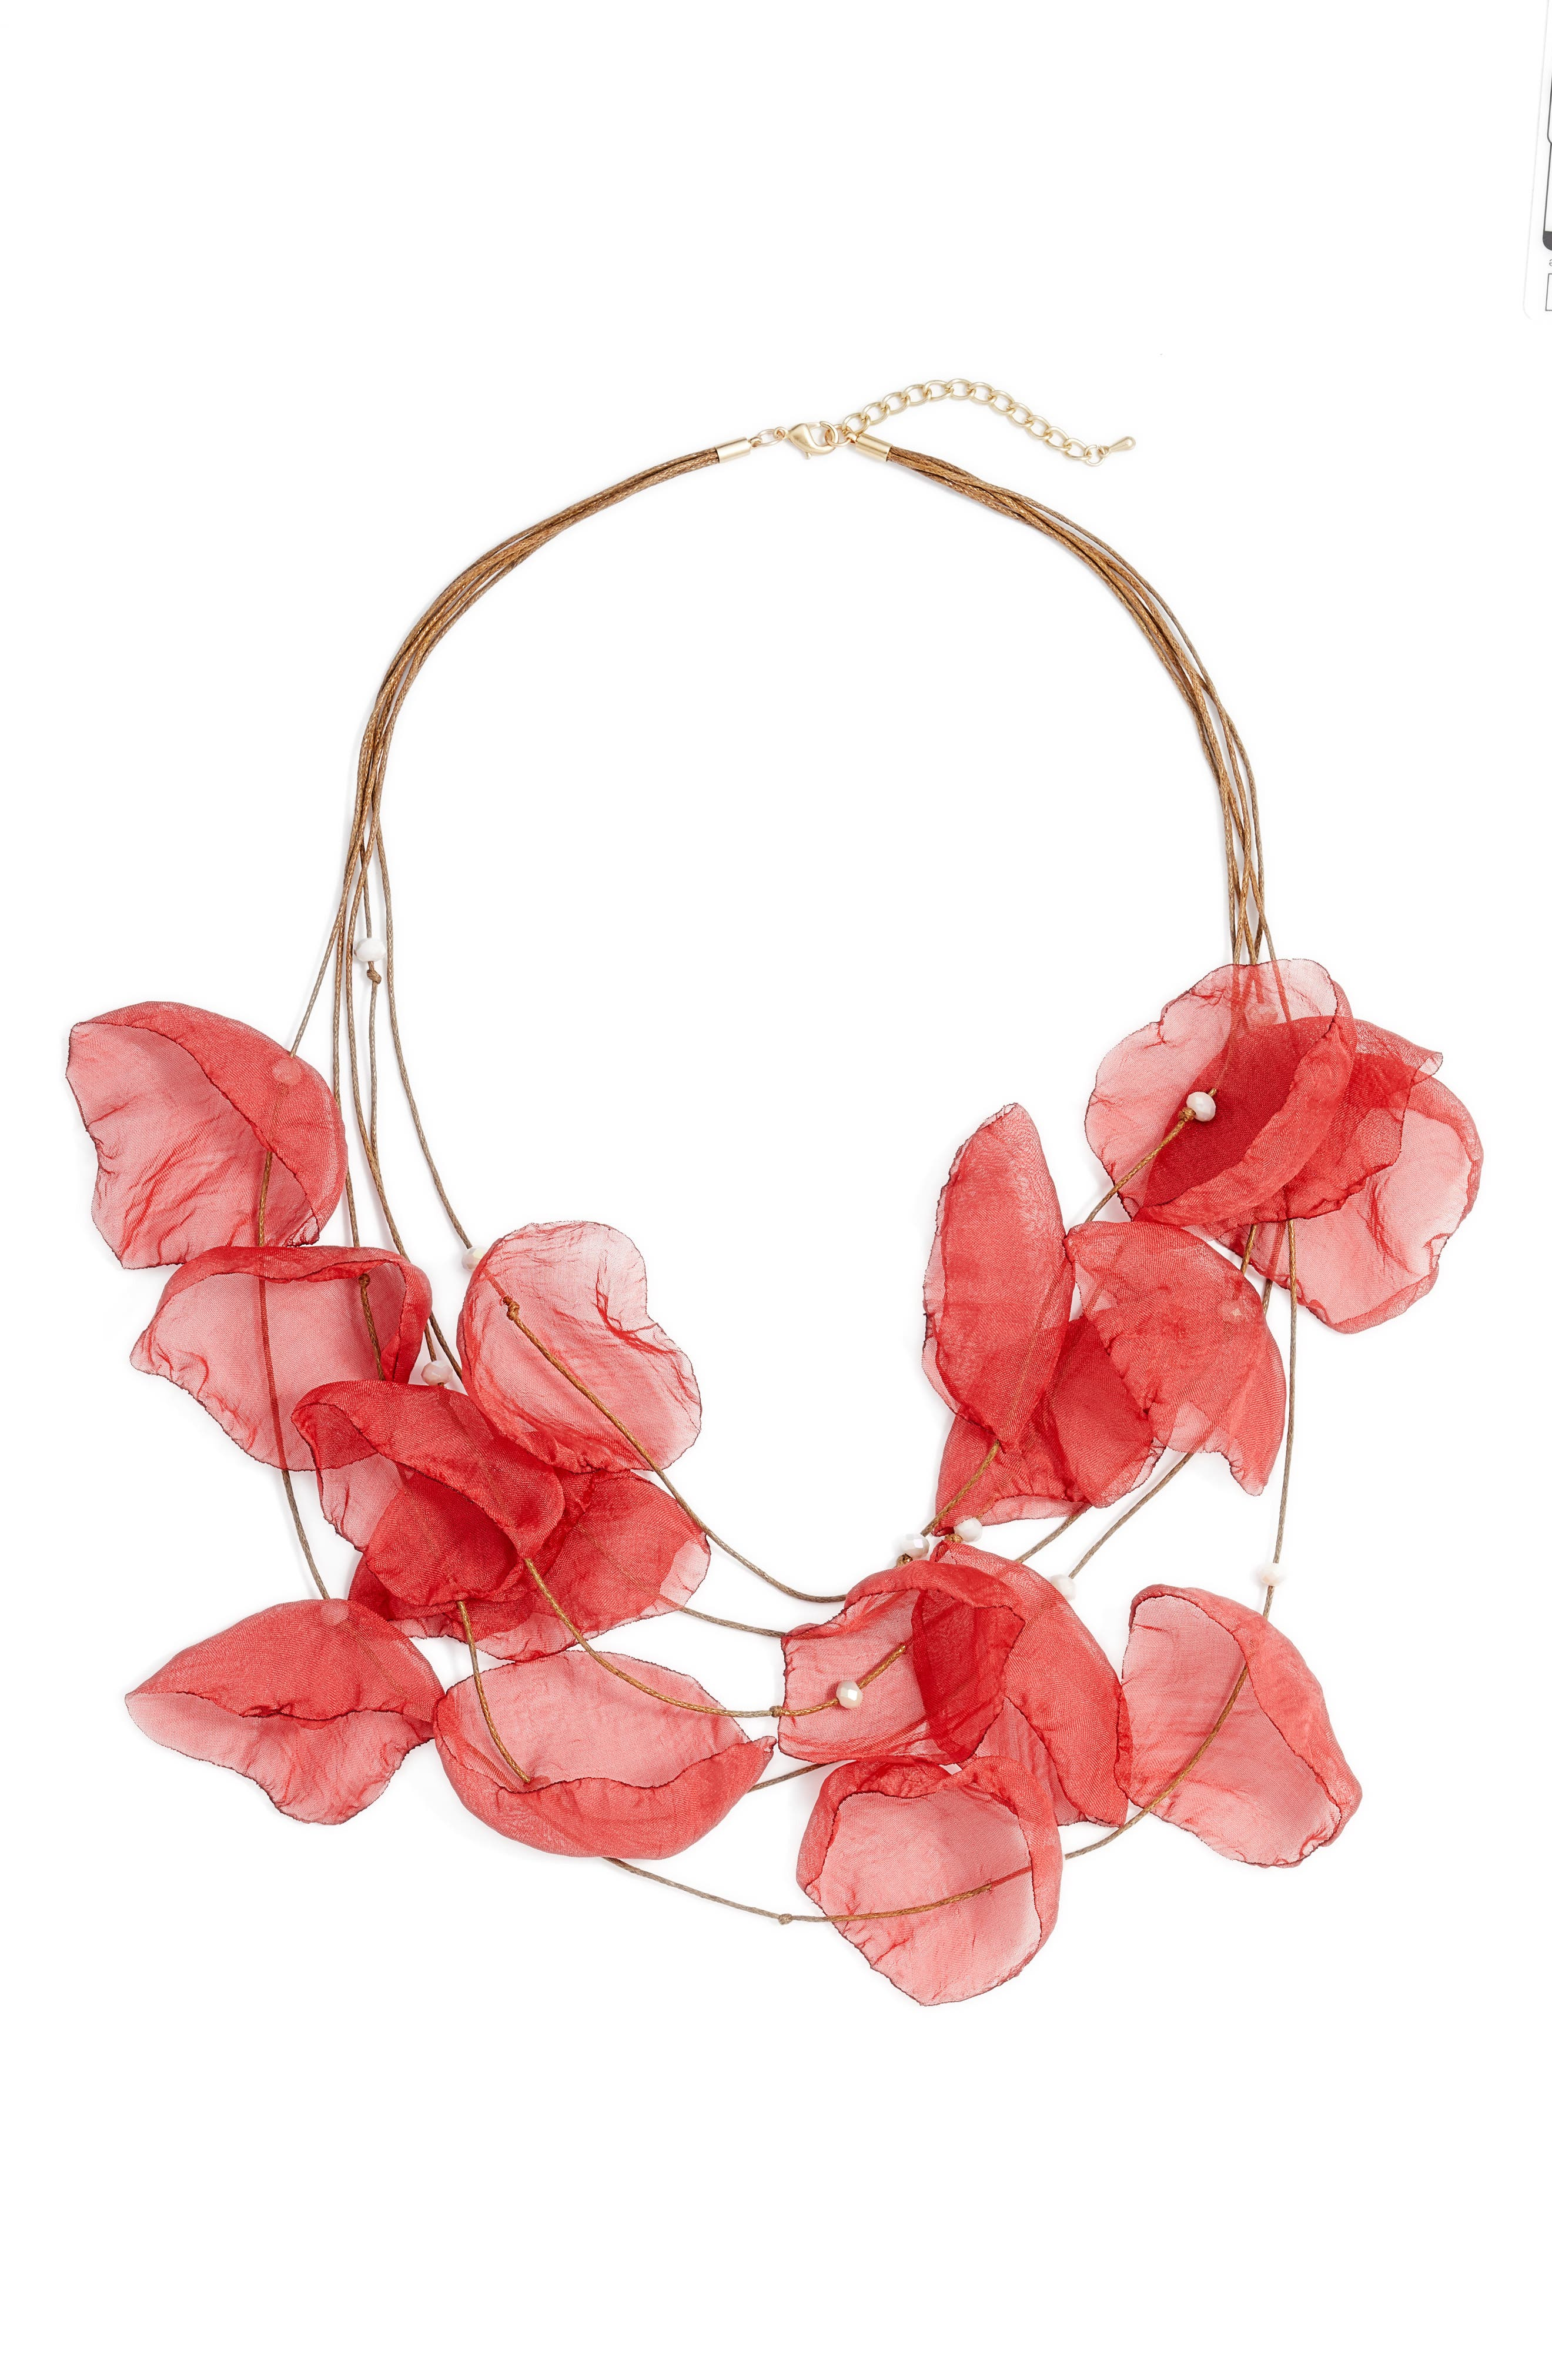 Chiffon Flower Statement Necklace,                             Main thumbnail 1, color,                             GOLD/ POPPY